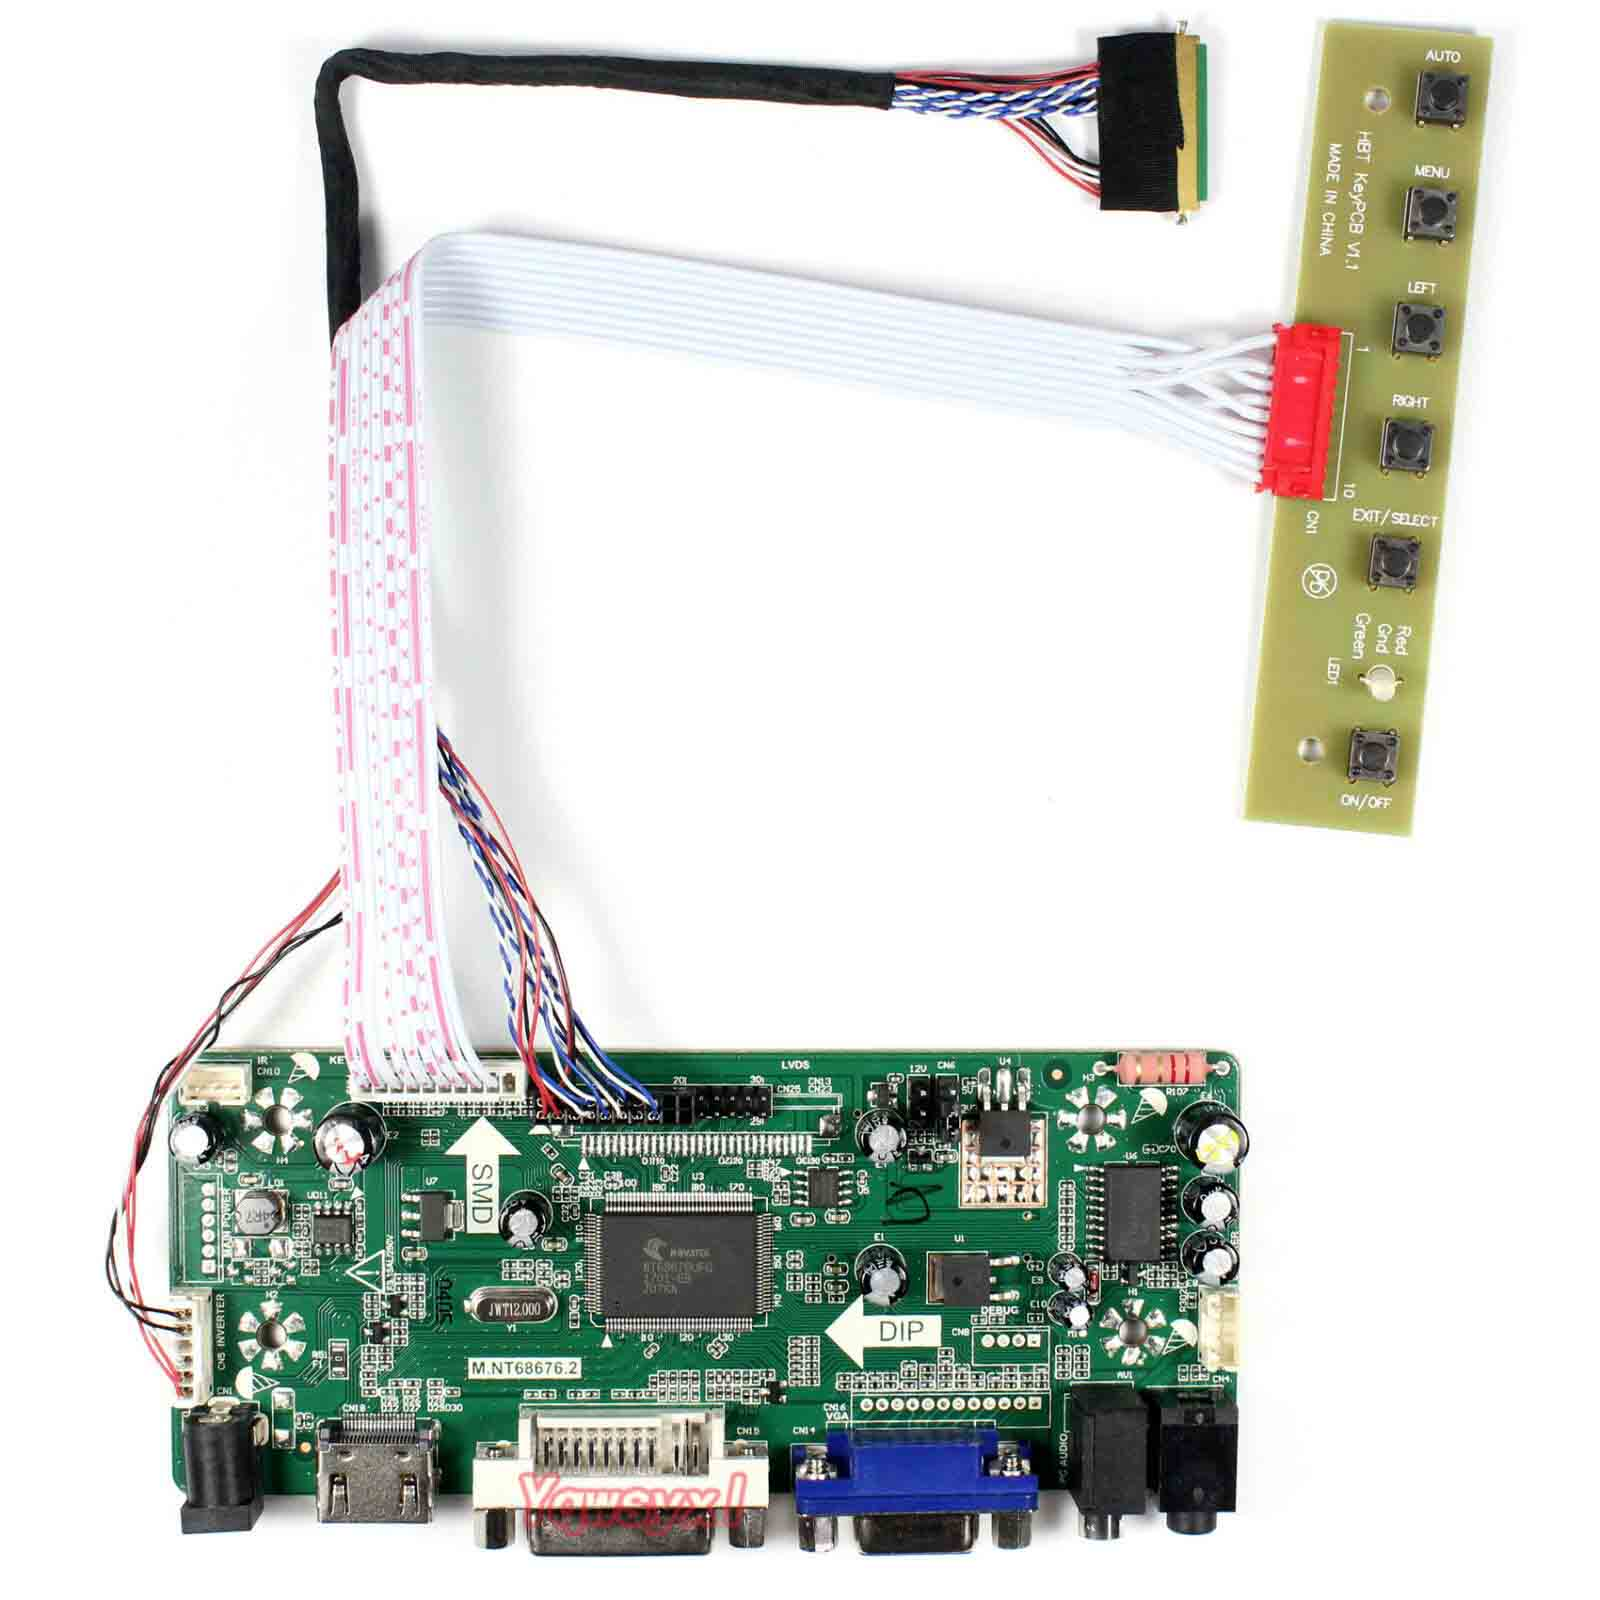 Yqwsyxl Control Board Monitor Kit For LTN140AT26-T01 LTN140AT26  HDMI+DVI+VGA LCD LED Screen Controller Board Driver